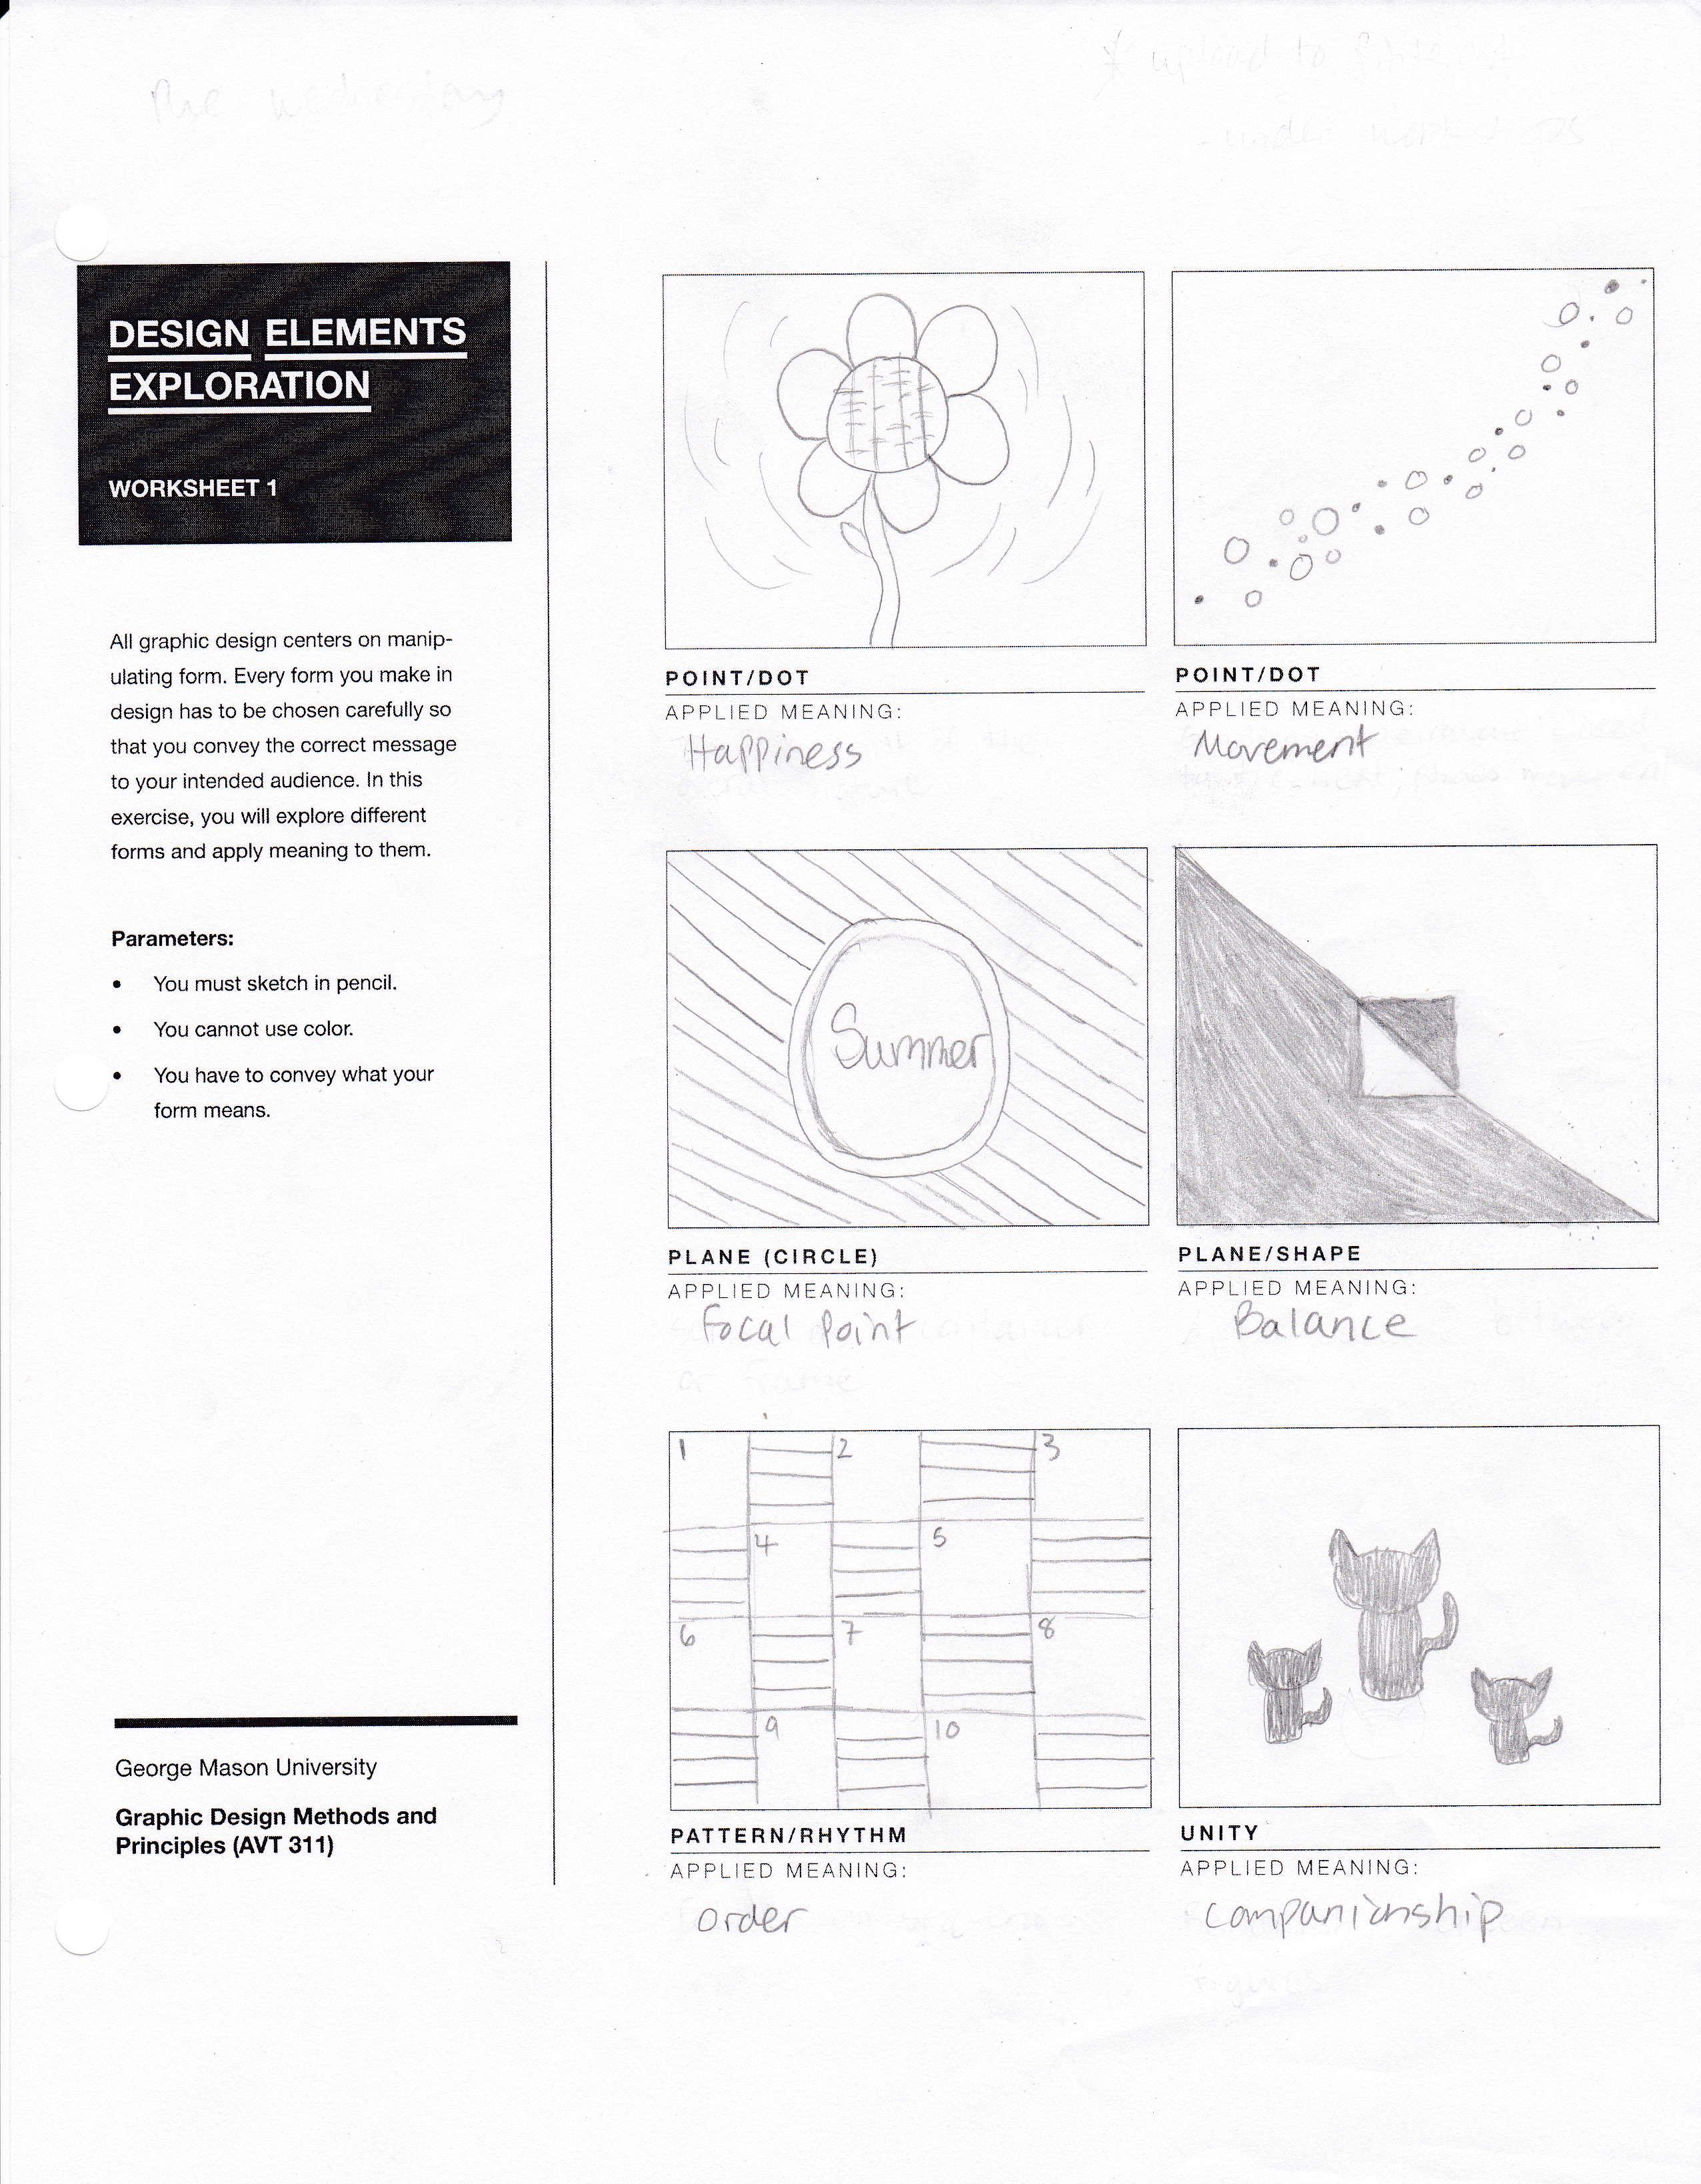 Design Elements Worksheet For Avt 311